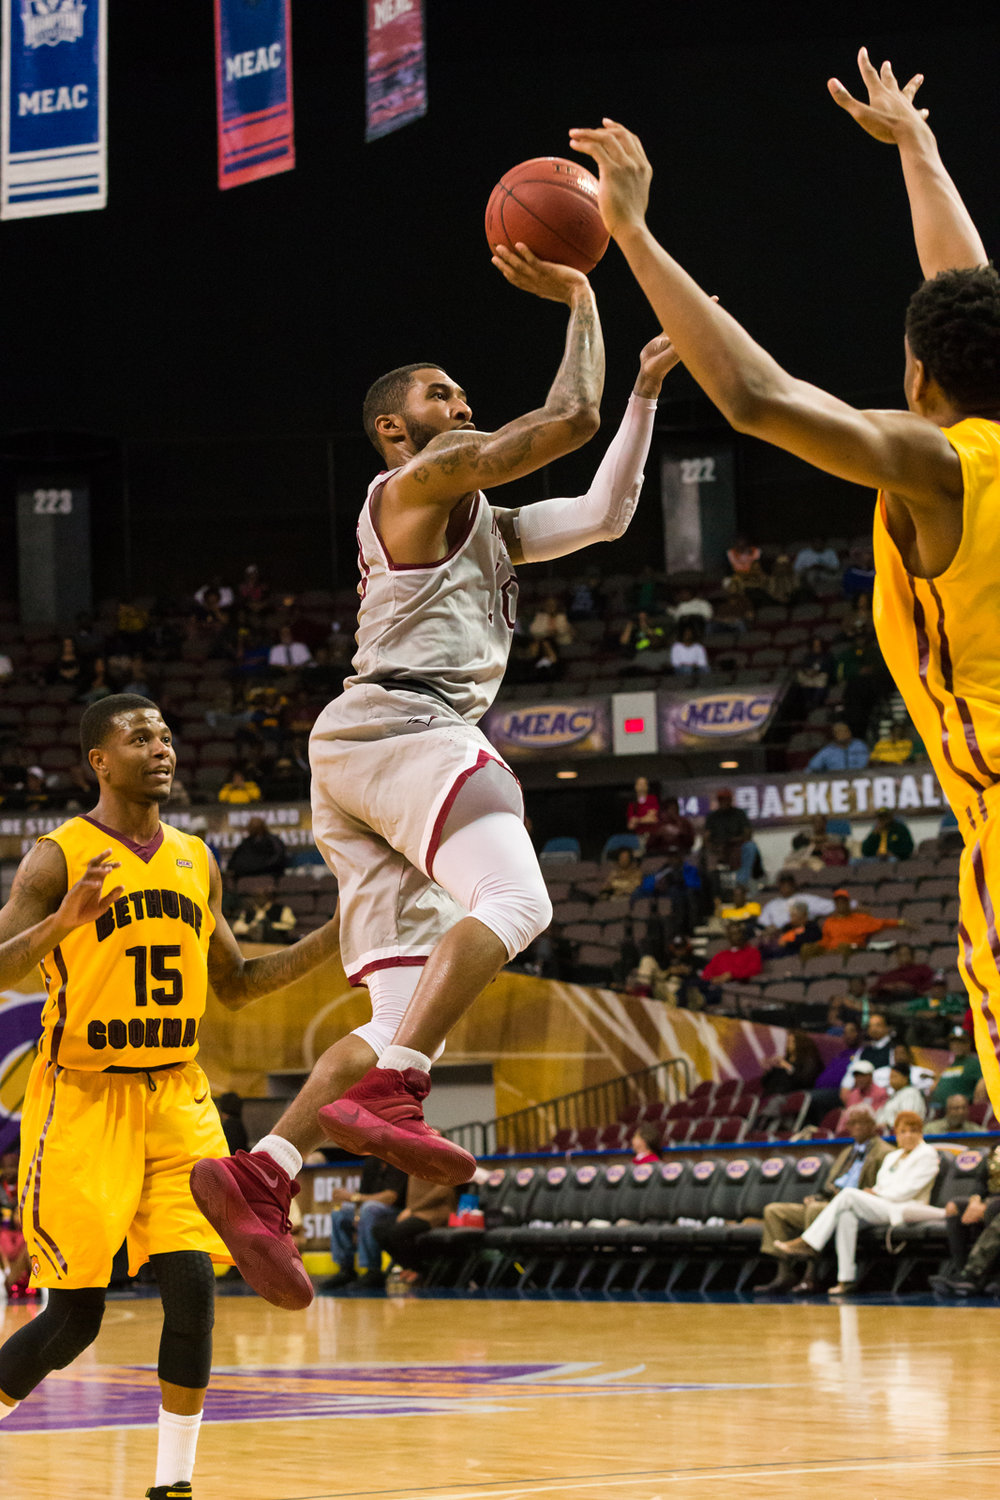 North Carolina Central Eagles guard Patrick Cole (11) goes up for a shot against the Bethune-Cookman Wildcats during the 2017 MEAC Tournament held at the Scope Arena in Norfolk, VA. North Carolina Central defeated Bethune-Cookman 95-60.